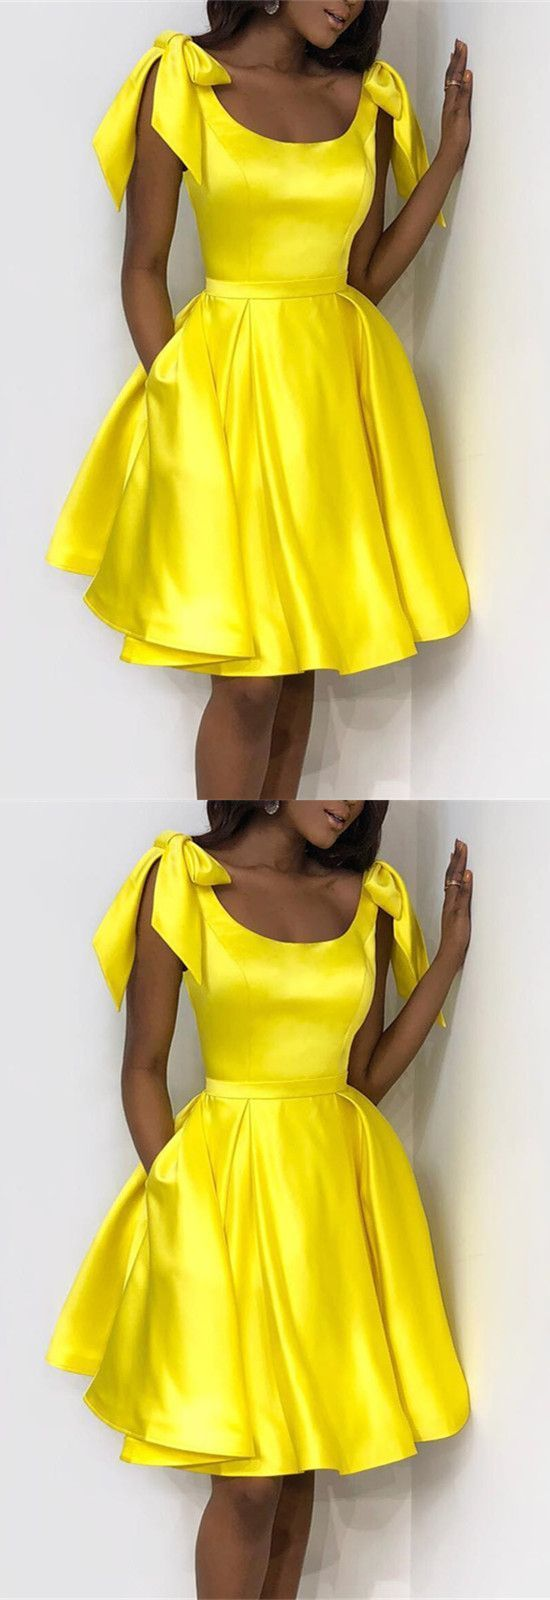 Yellow short homecoming dresses with bowknot on shouder under